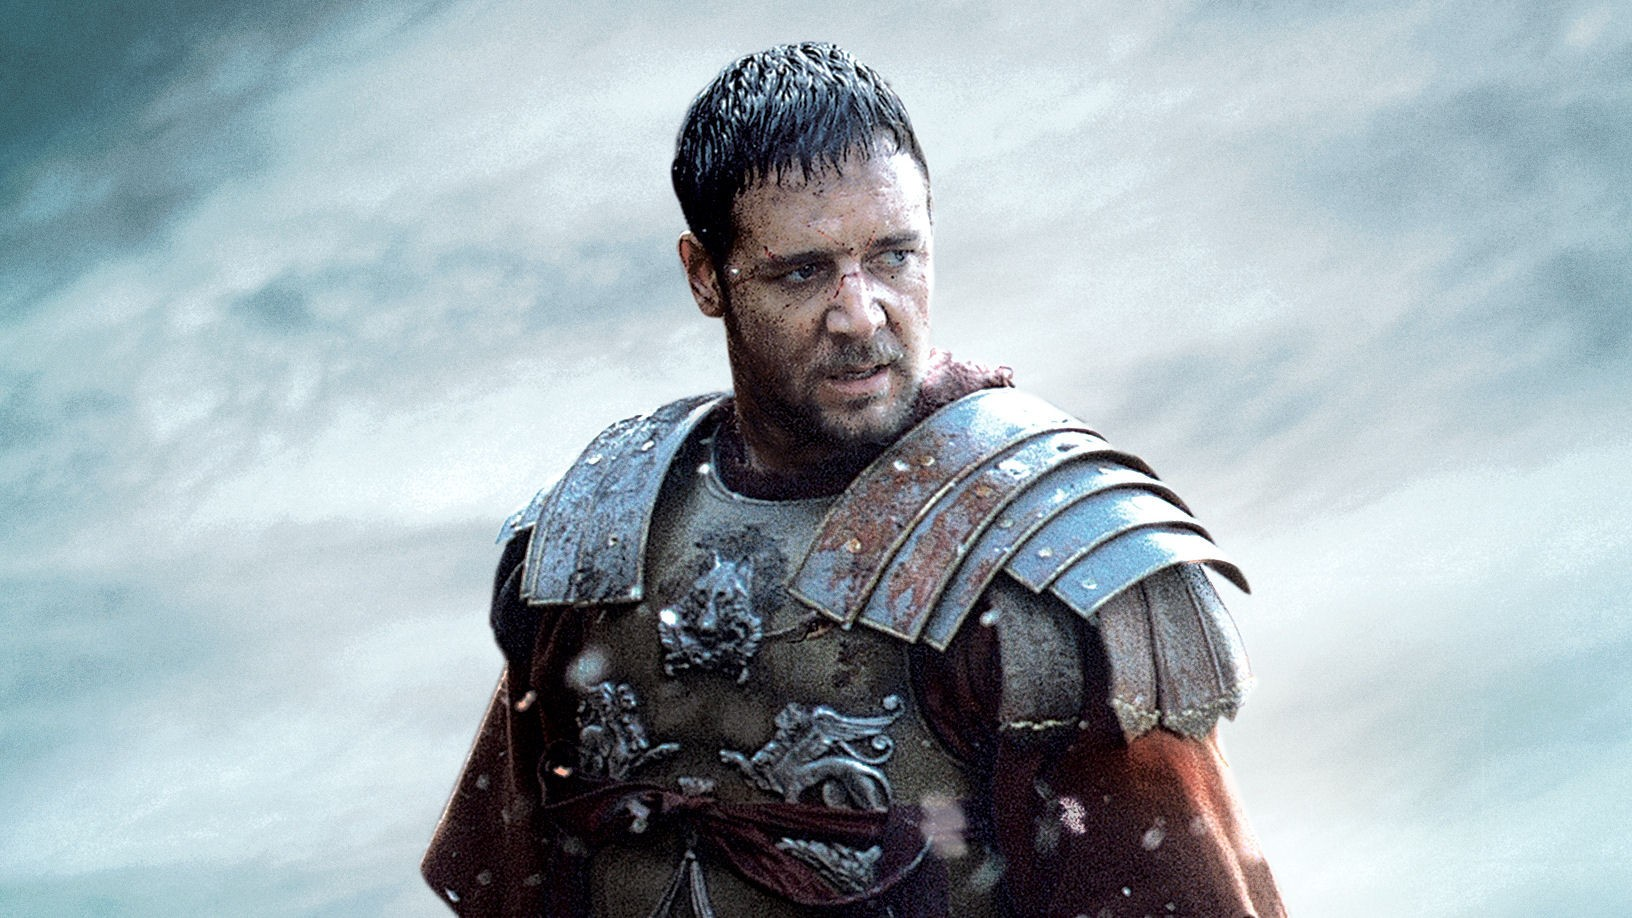 Movies Gladiator Movie Russell Crowe 1439x1403 Wallpaper: Opening Shot: Gladiator (2000) The Wheat And The Bird